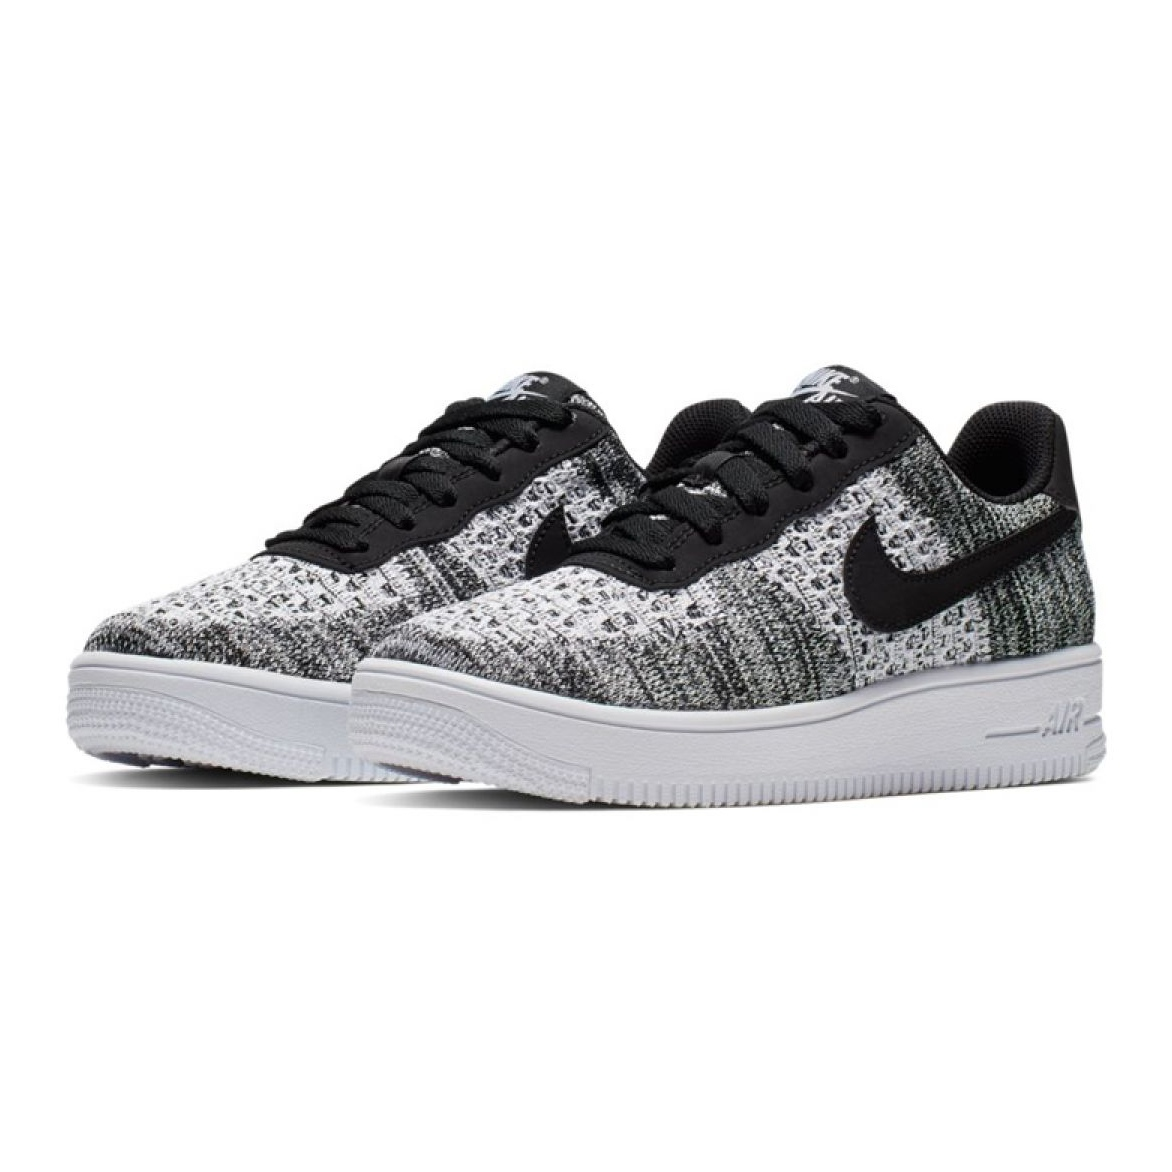 Sapatilhas Nike Air Force 1 Flyknit 2.0 Gs Jr BV0063 001